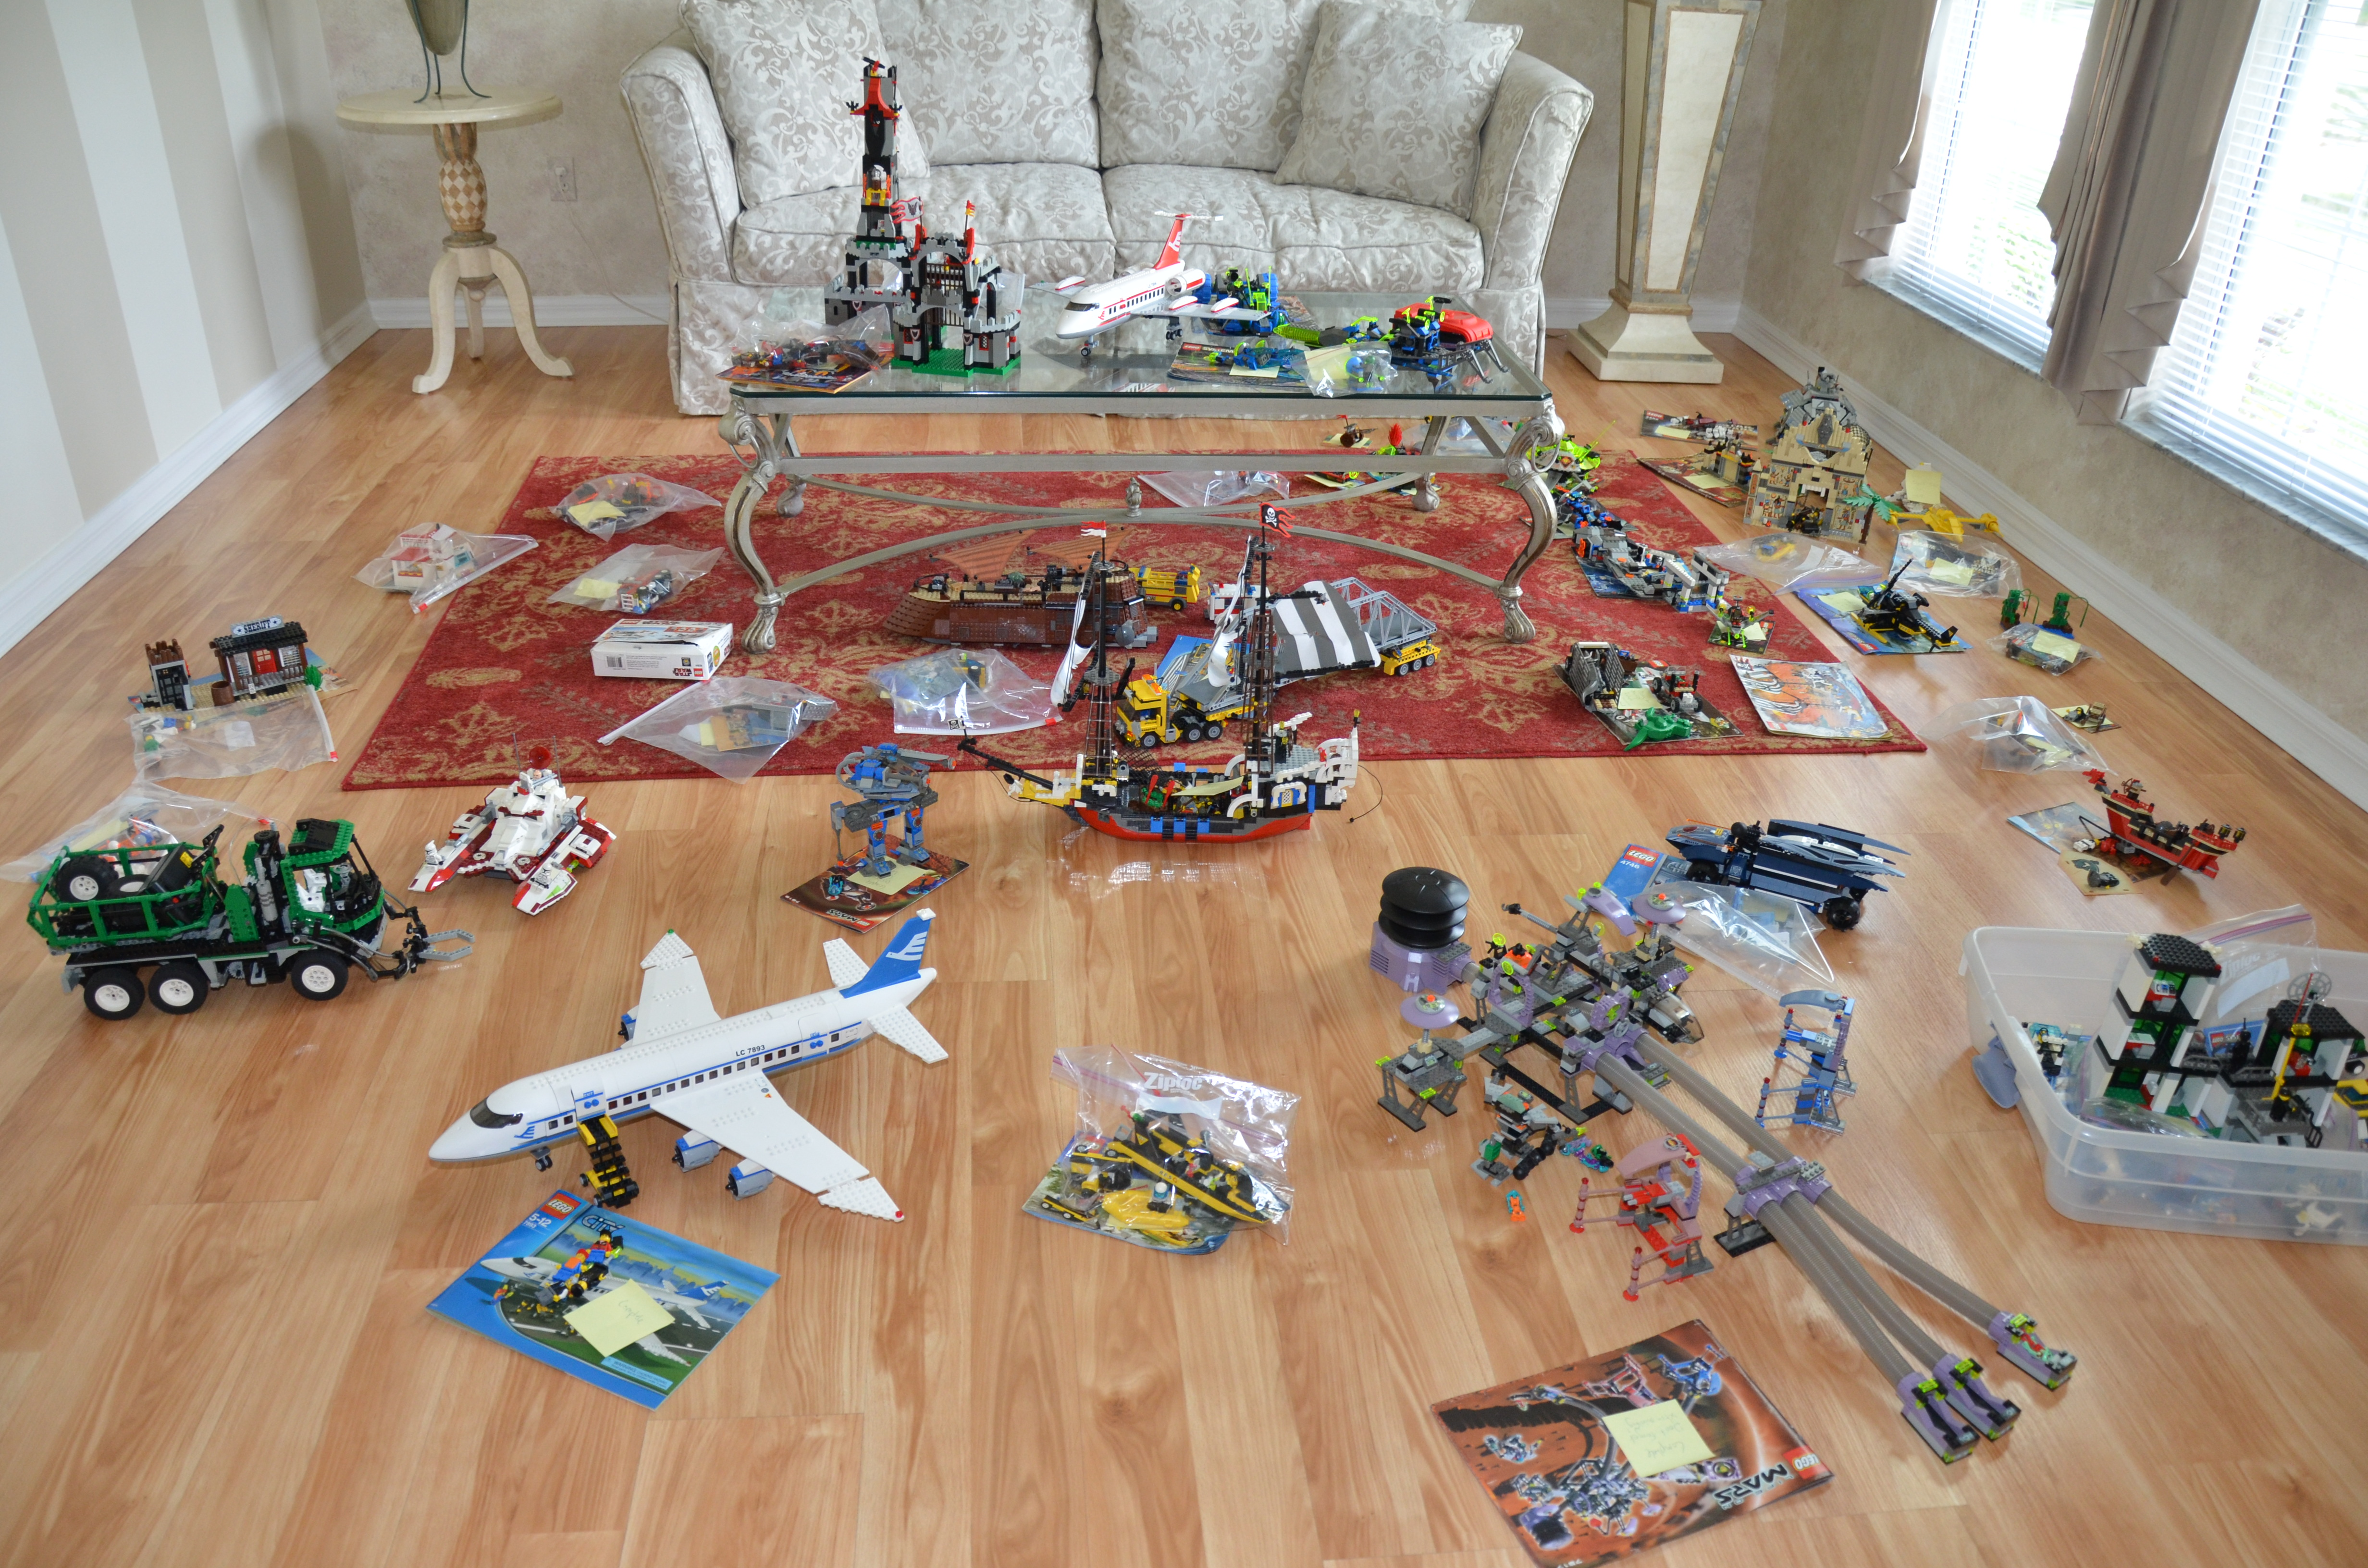 The Summer Of Legos How My Son Built A Small Business From His Snap Circuits Kit Education Set Game Toy Science Hobby New Ebay August 2013 176